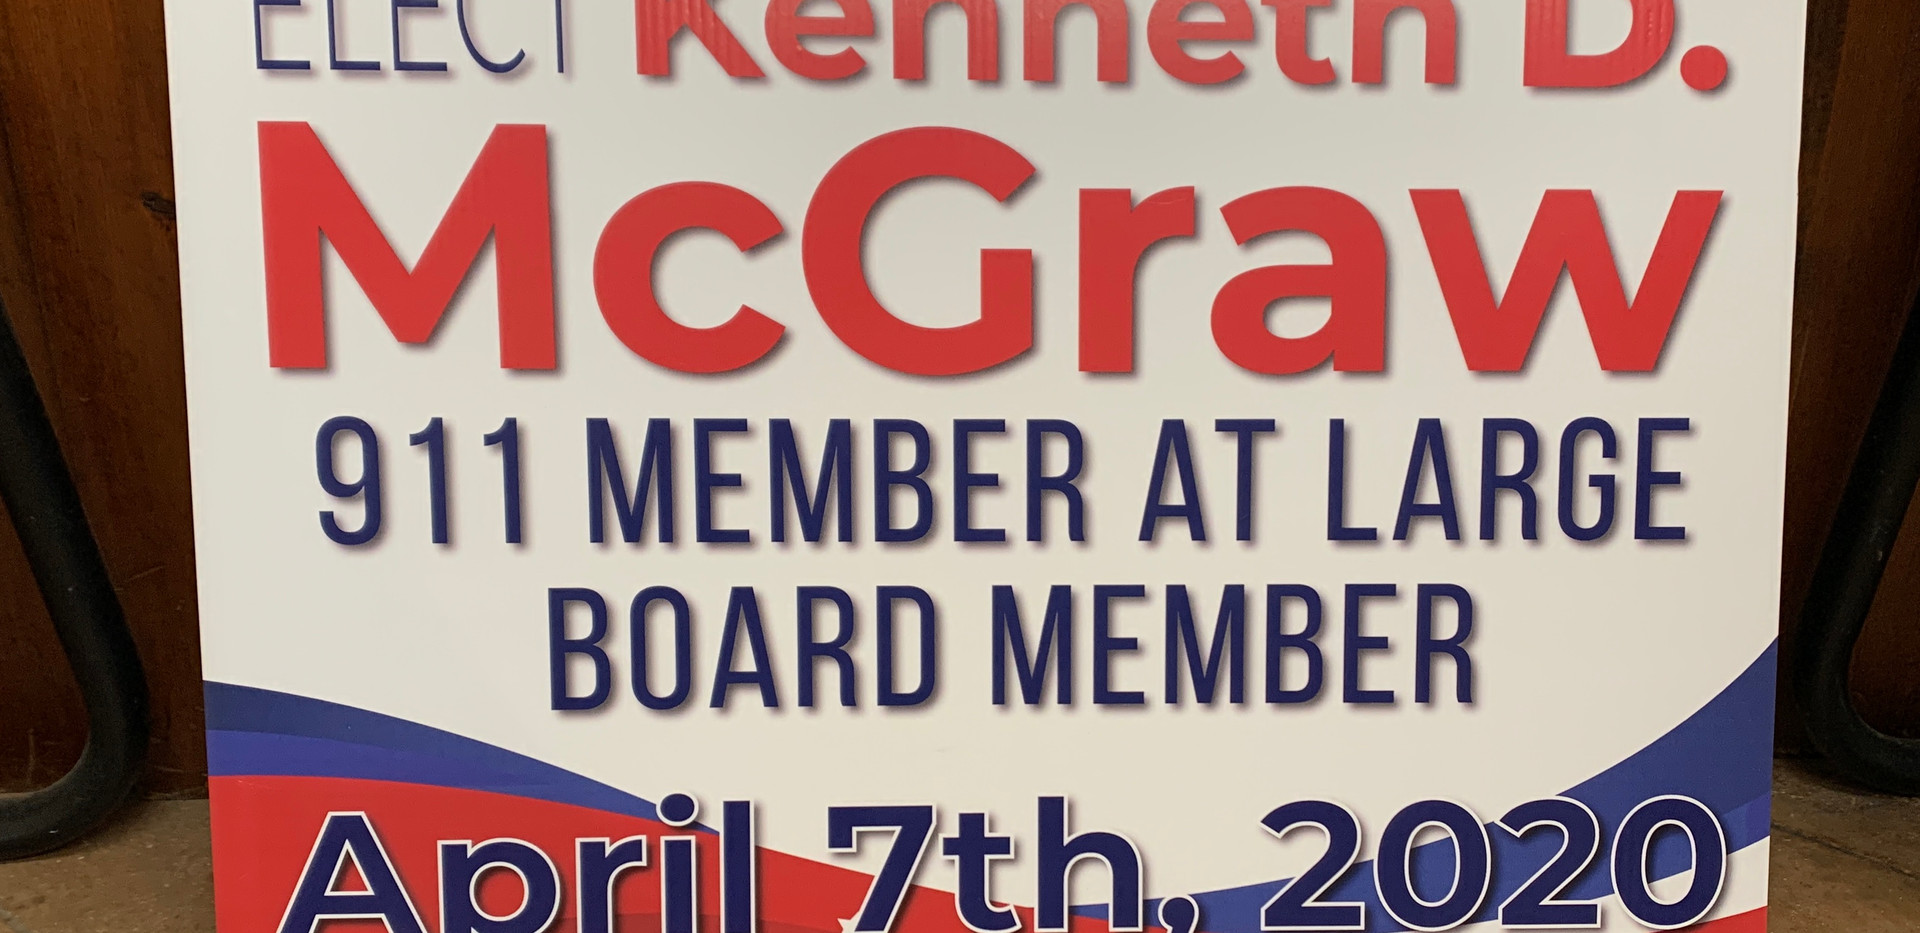 911 board member election sign